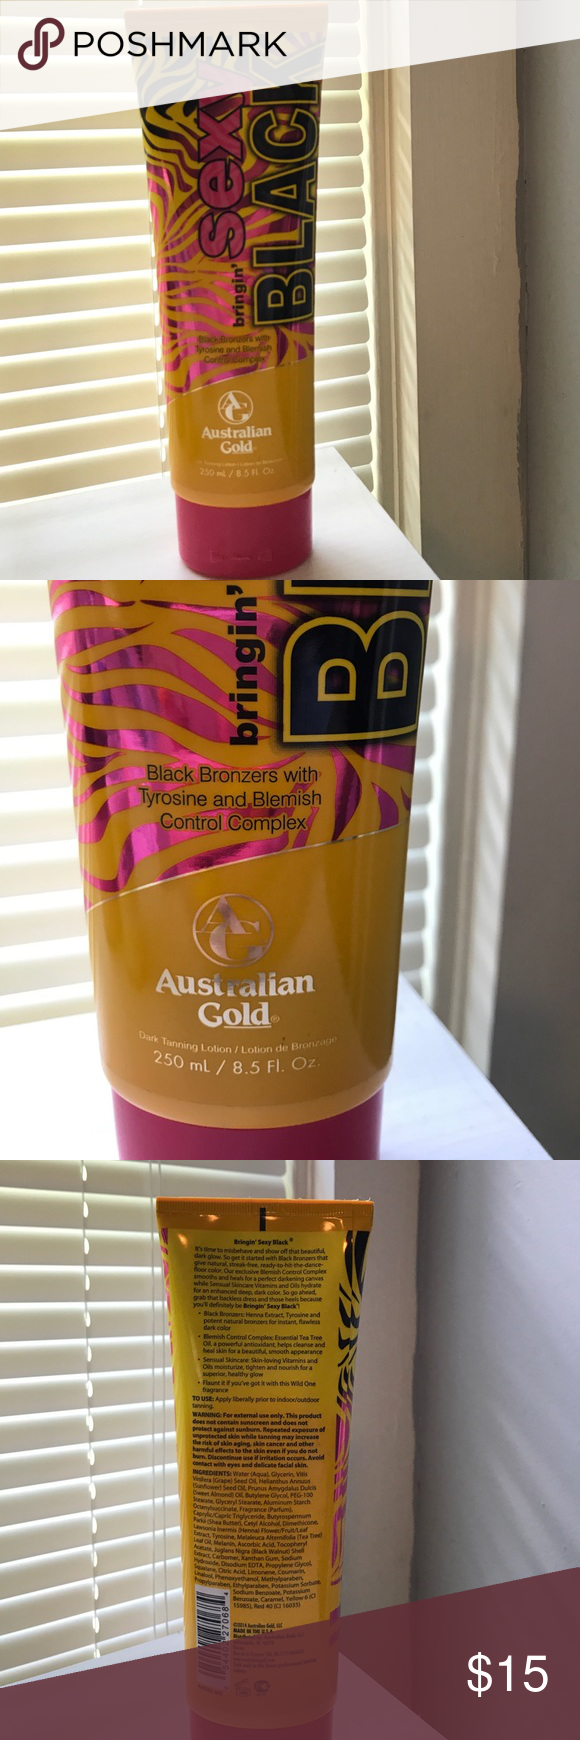 Tanning Lotion Used 2x Only To The Tanning Bed Australian Gold Tanning Lotion W Blemish Control Australian Gold Tanning Lotion Skin Care Acne Tanning Lotion